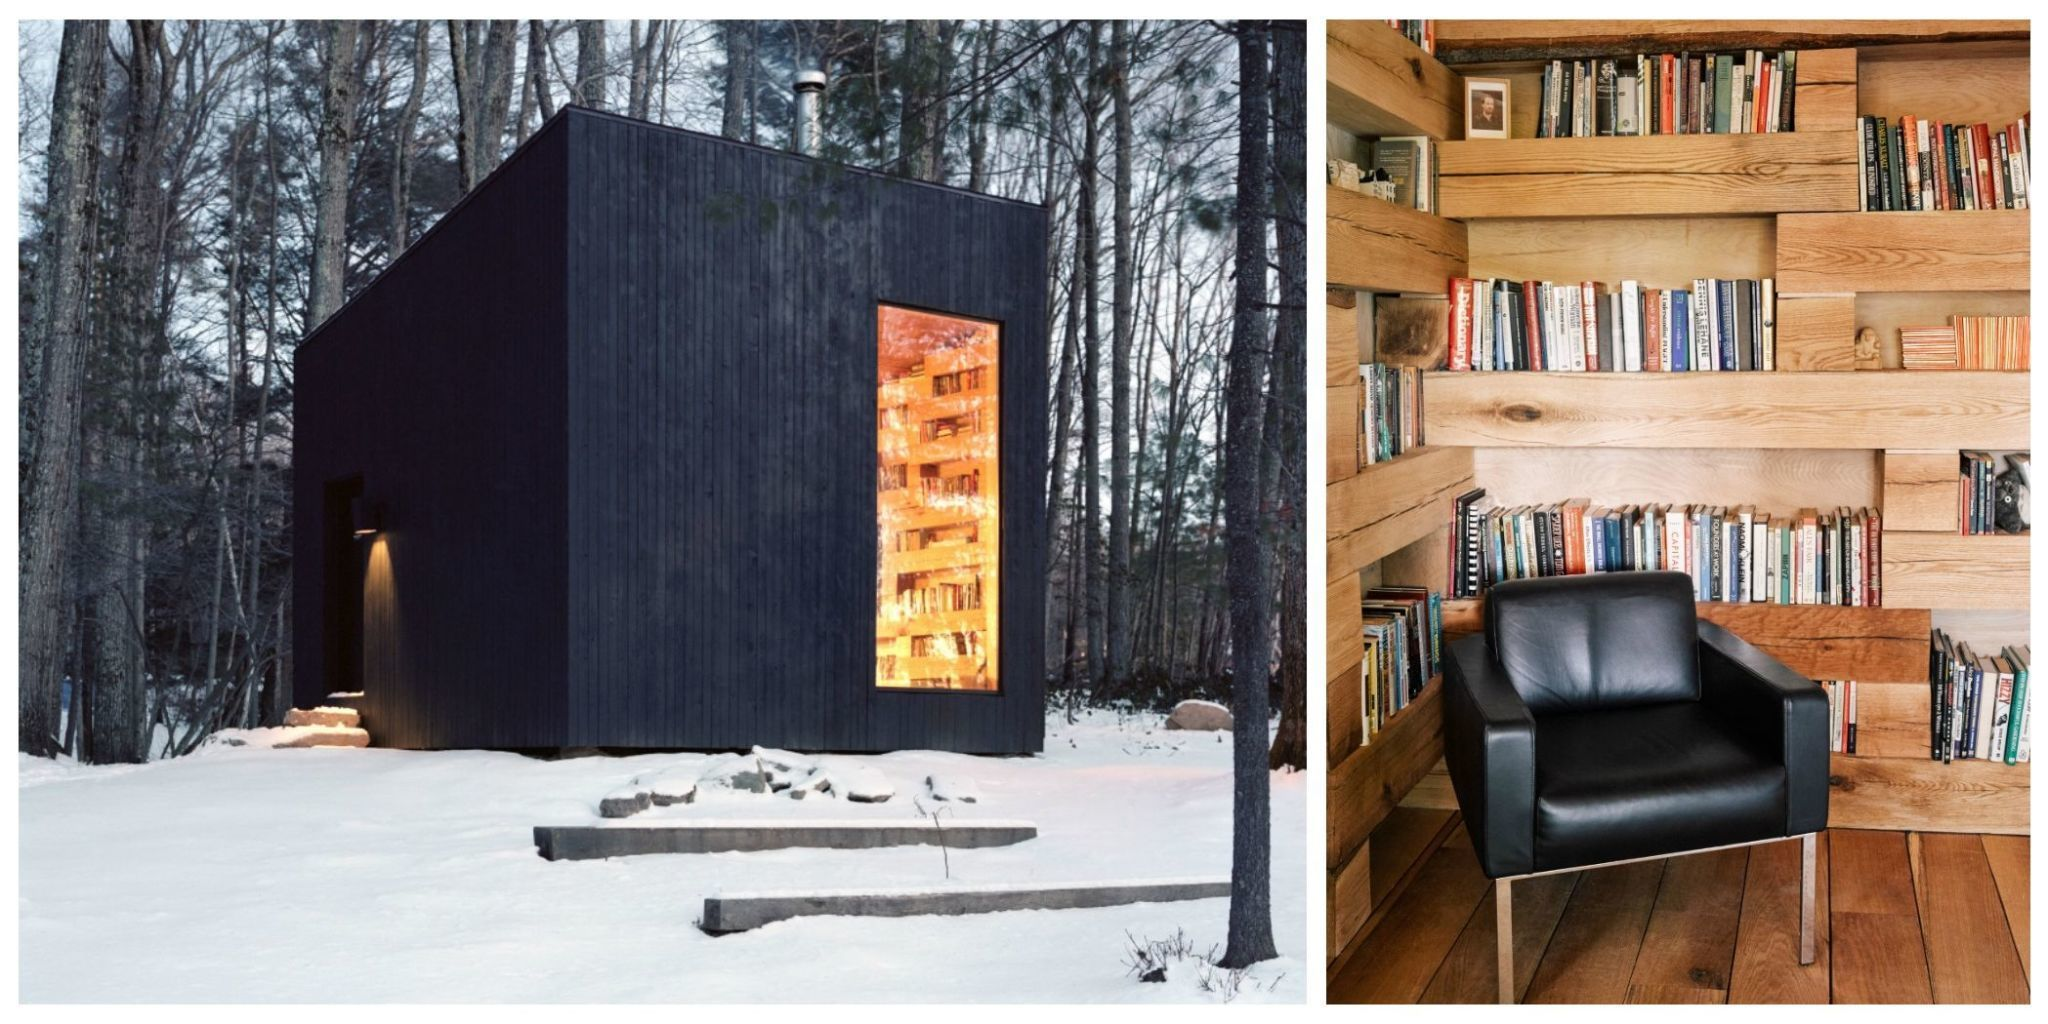 This Tiny Shed in the Woods Is a Library